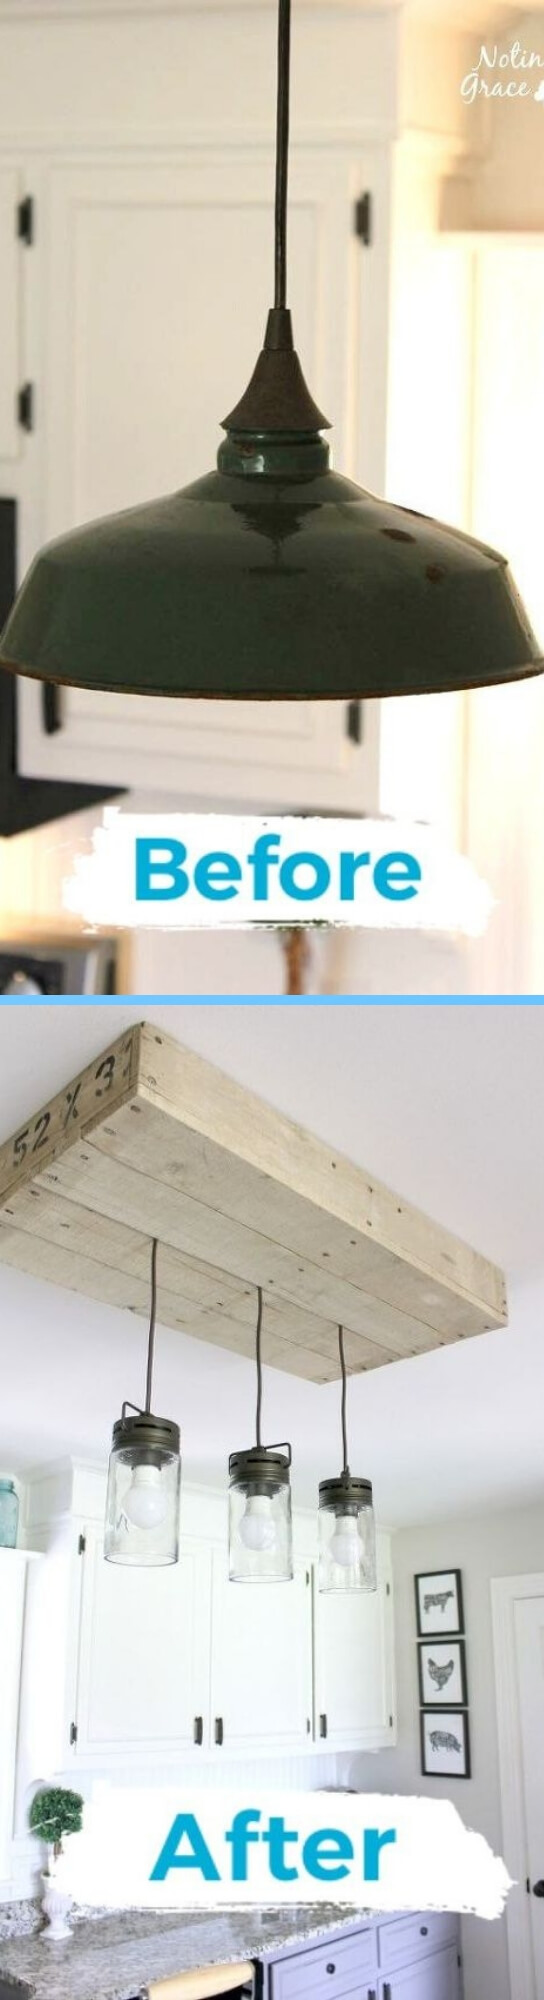 Farmhouse Lighting Designs & Ideas: Farmhouse Pallet Kitchen Light Box